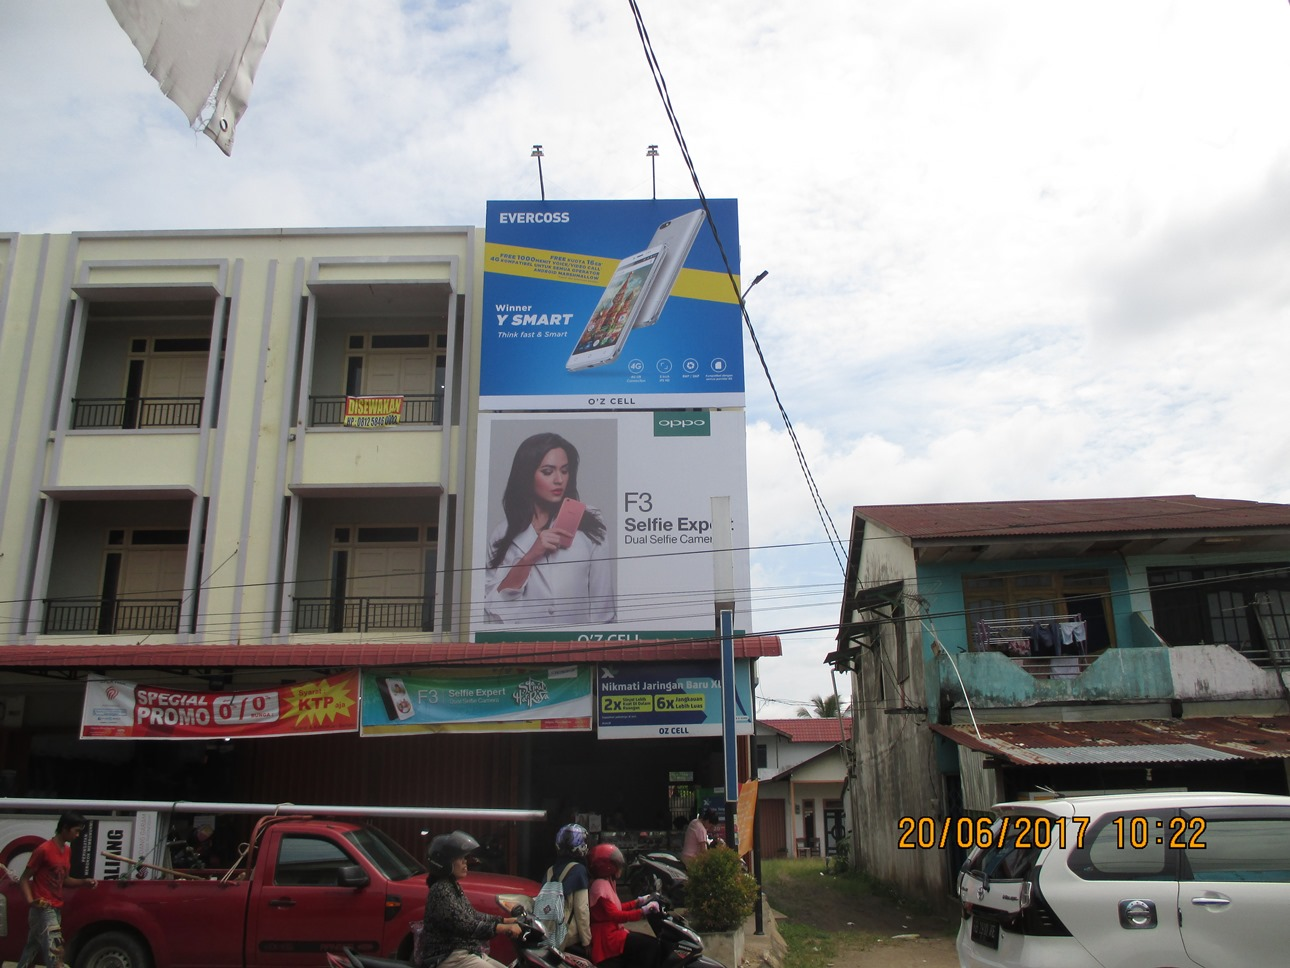 BILLBOARD VERTICAL (2)